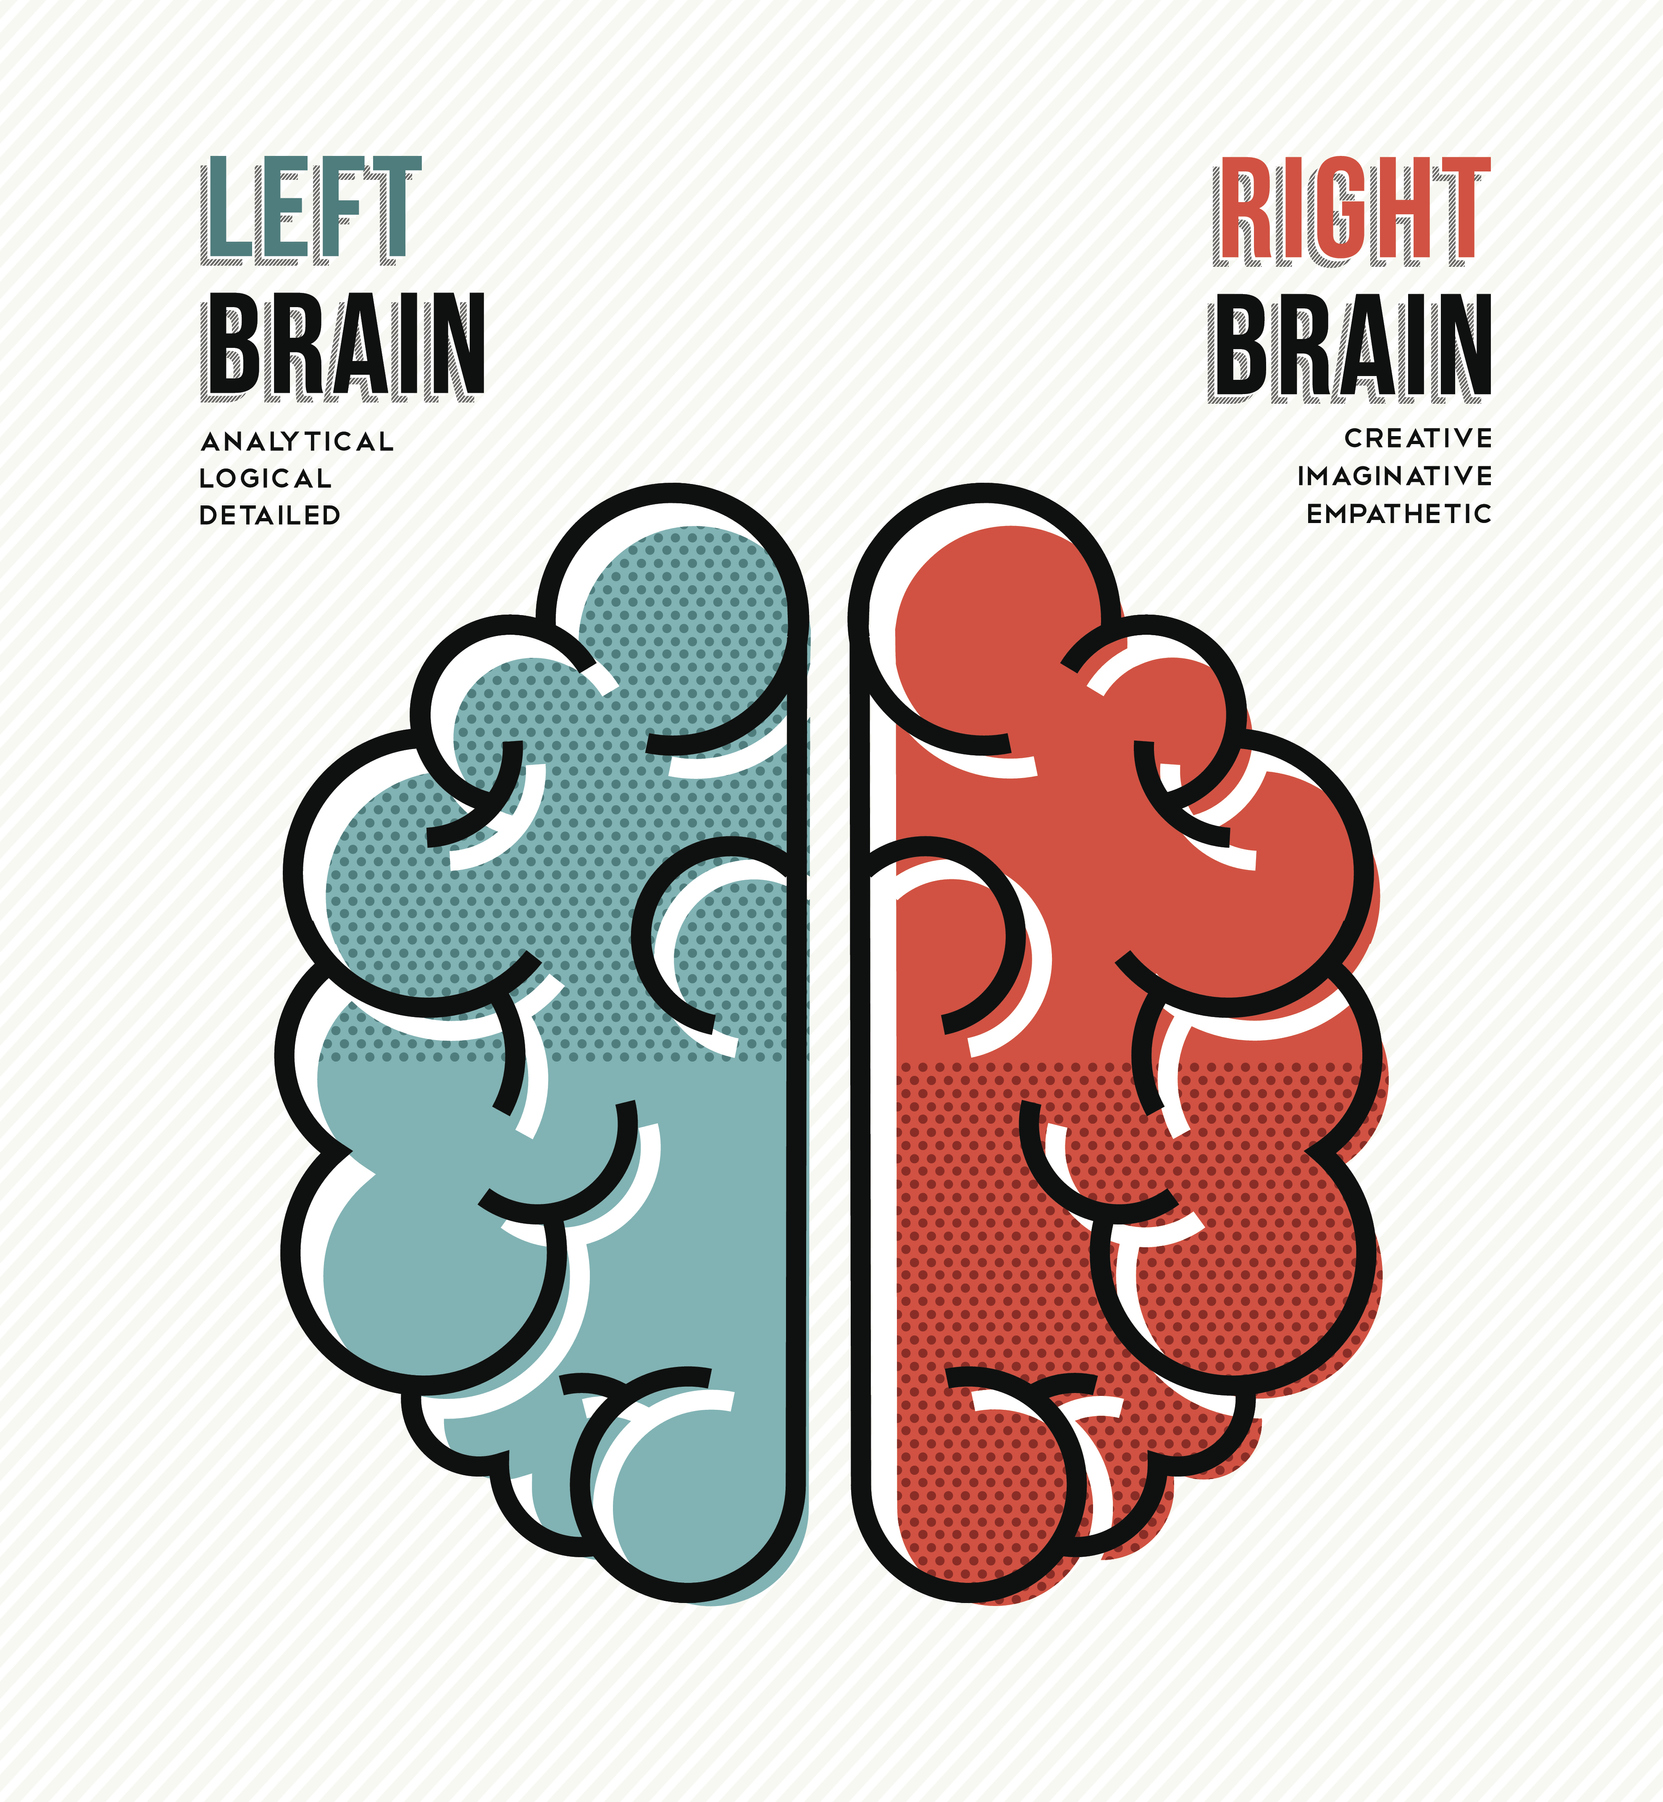 Left and right brain concept poster illustration